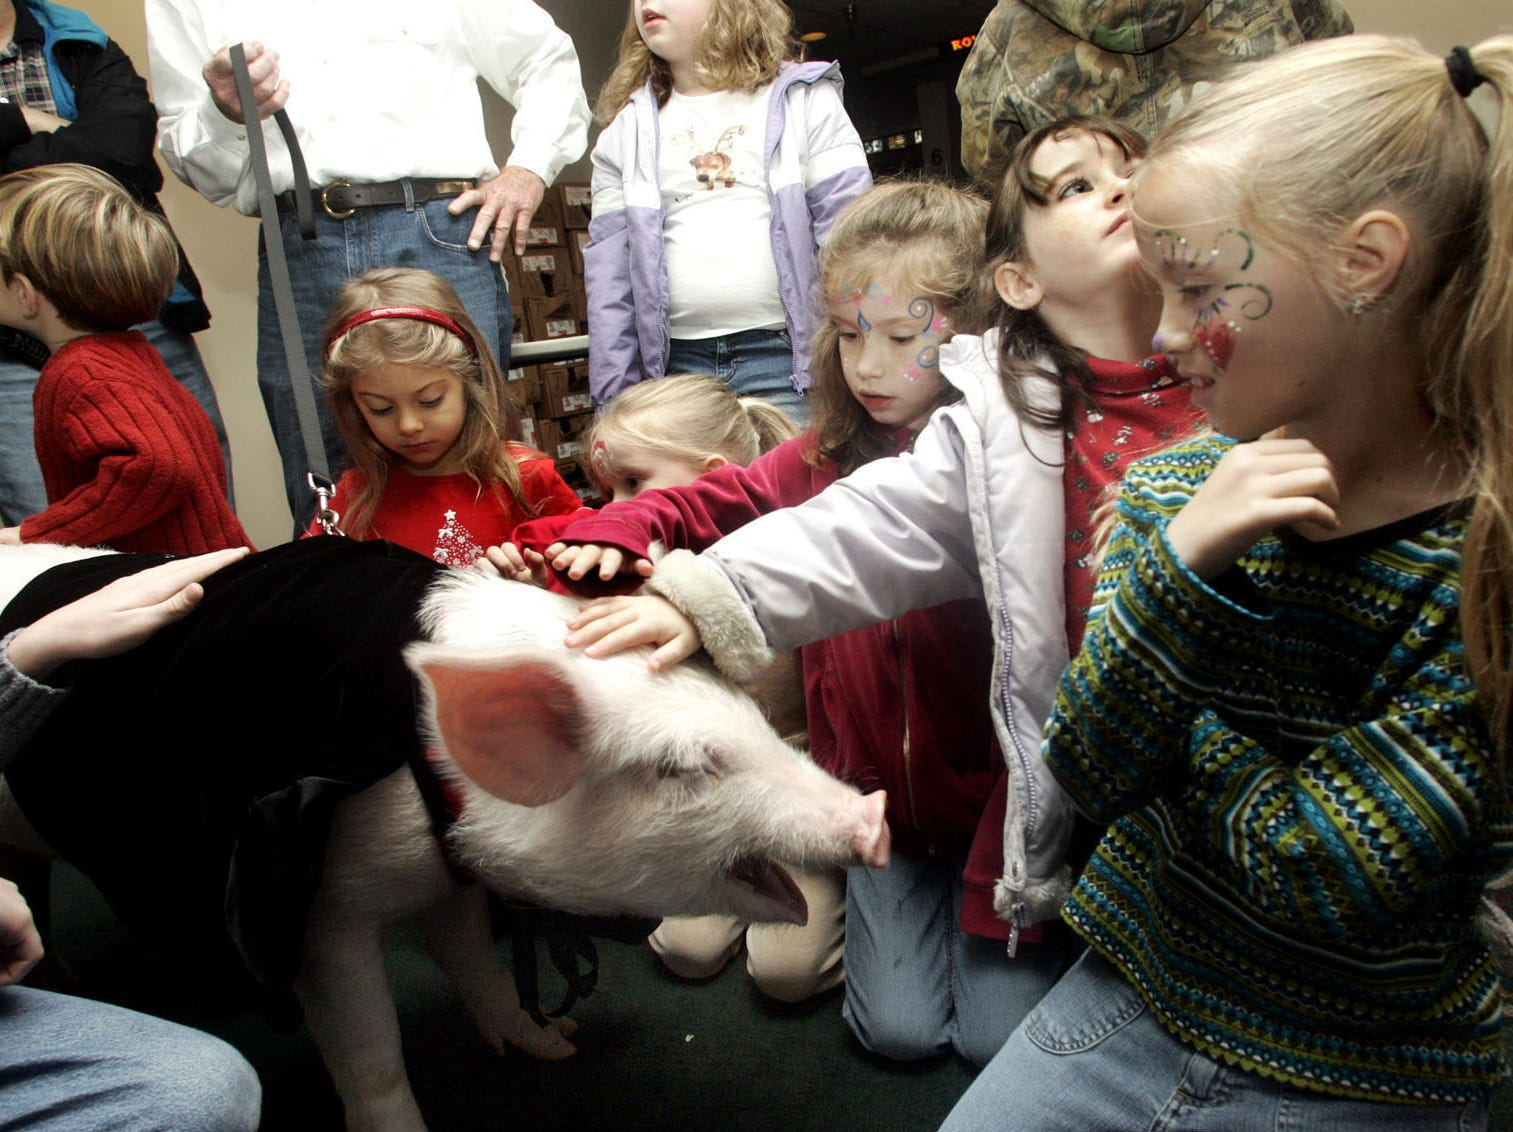 Kids crowd around Wilbur the pig during a special showing of the film Charlotte's Web at the Premiere 6 theatre in Jackson Heights Plaza, Dec. 21, 2006.